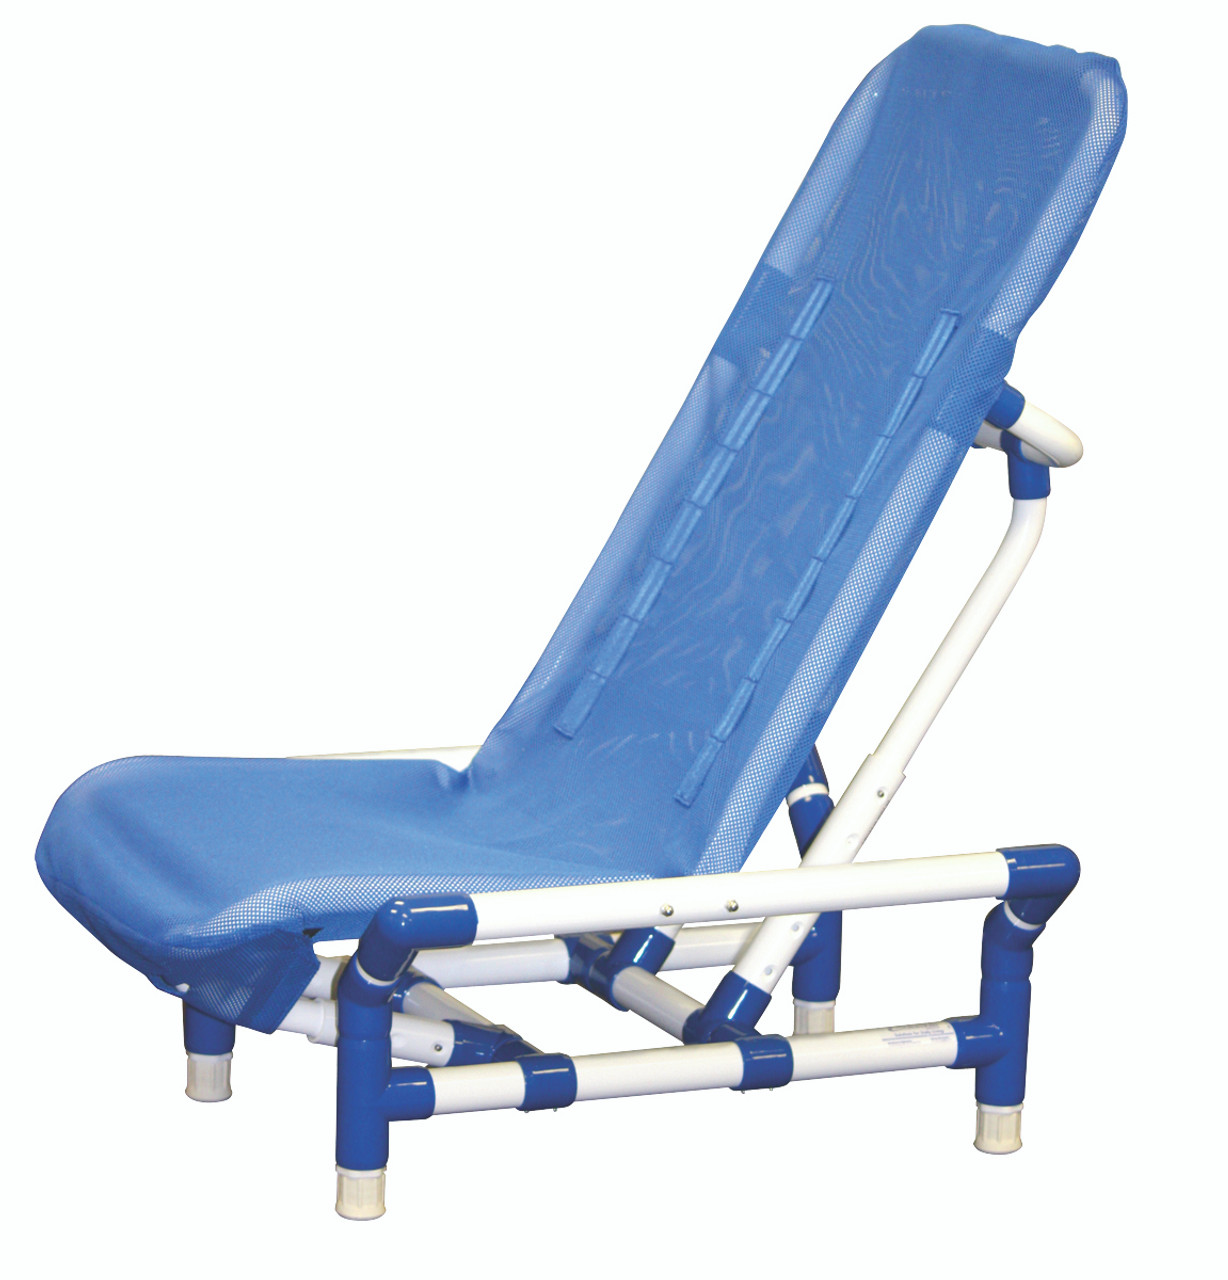 Remarkable Reclining Bath Chair With Safety Harness Large To 180 Lb Creativecarmelina Interior Chair Design Creativecarmelinacom